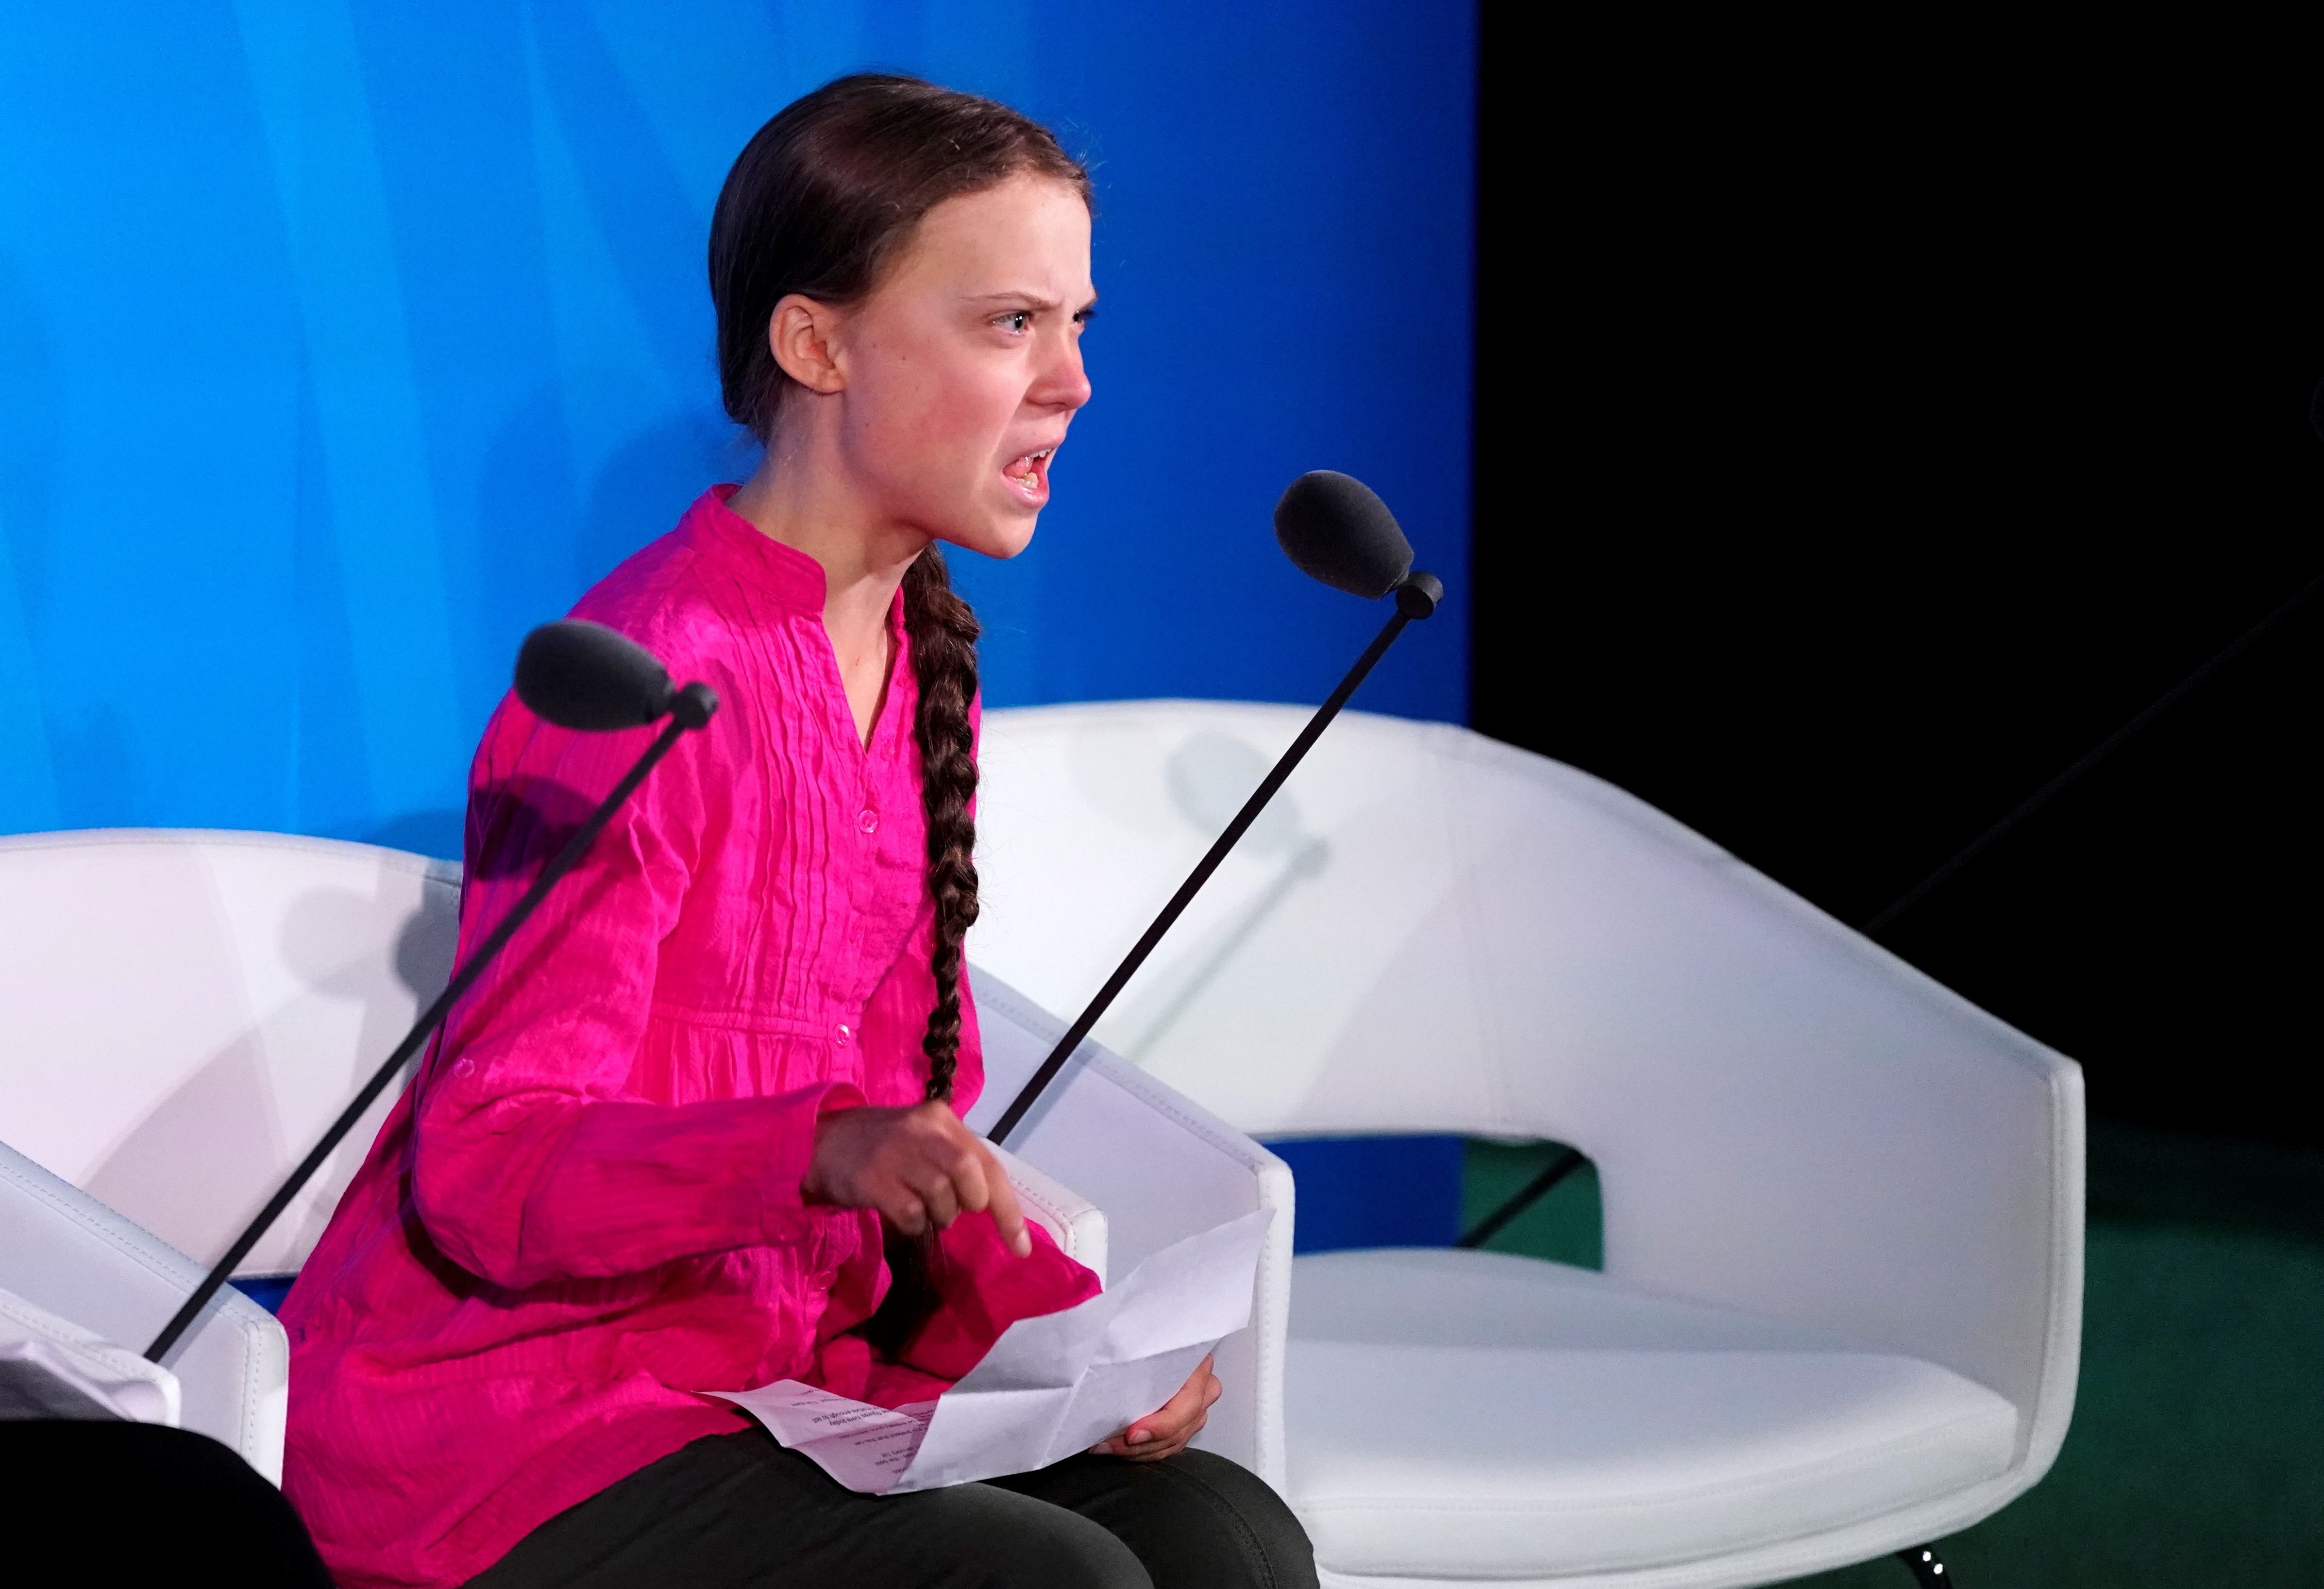 16-year-old Swedish Climate activist Greta Thunberg speaks at the 2019 United Nations Climate Action Summit at U.N. headquarters in New York City, New York, U.S., September 23, 2019. REUTERS/Carlo Allegri